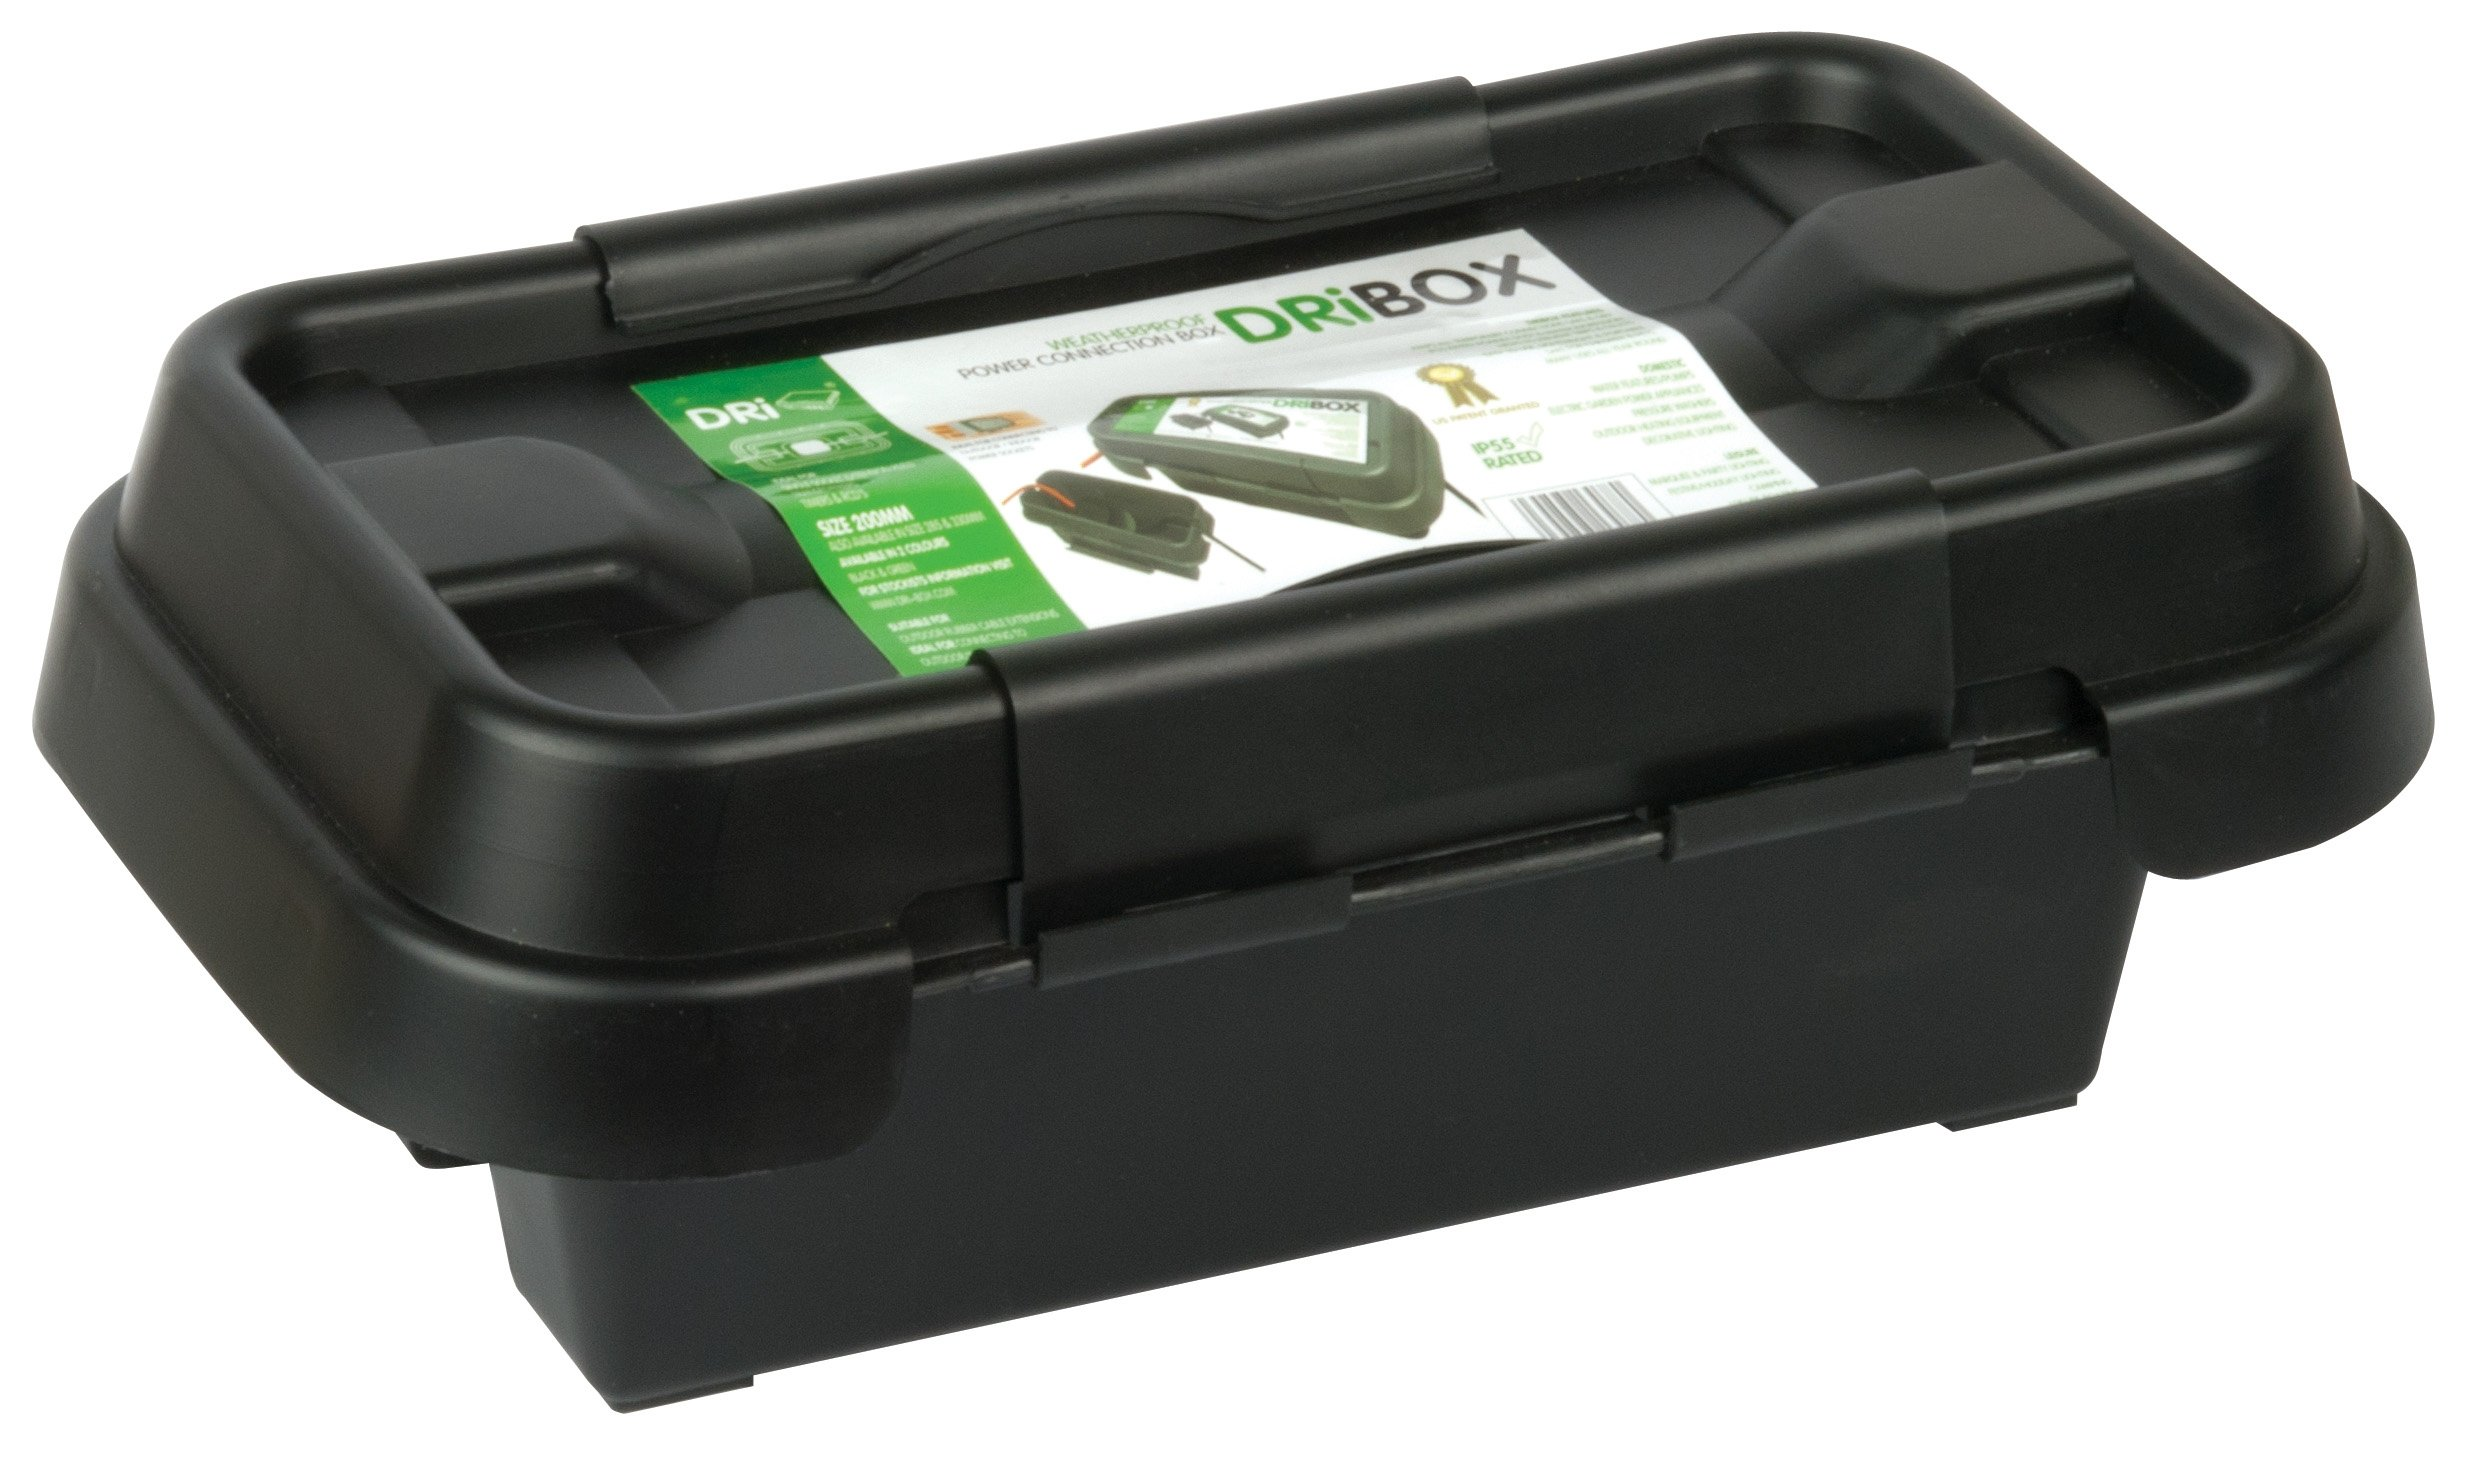 Dri-Box DRiBOX FL-1859-200 IP55 Small Weatherproof Box - Black